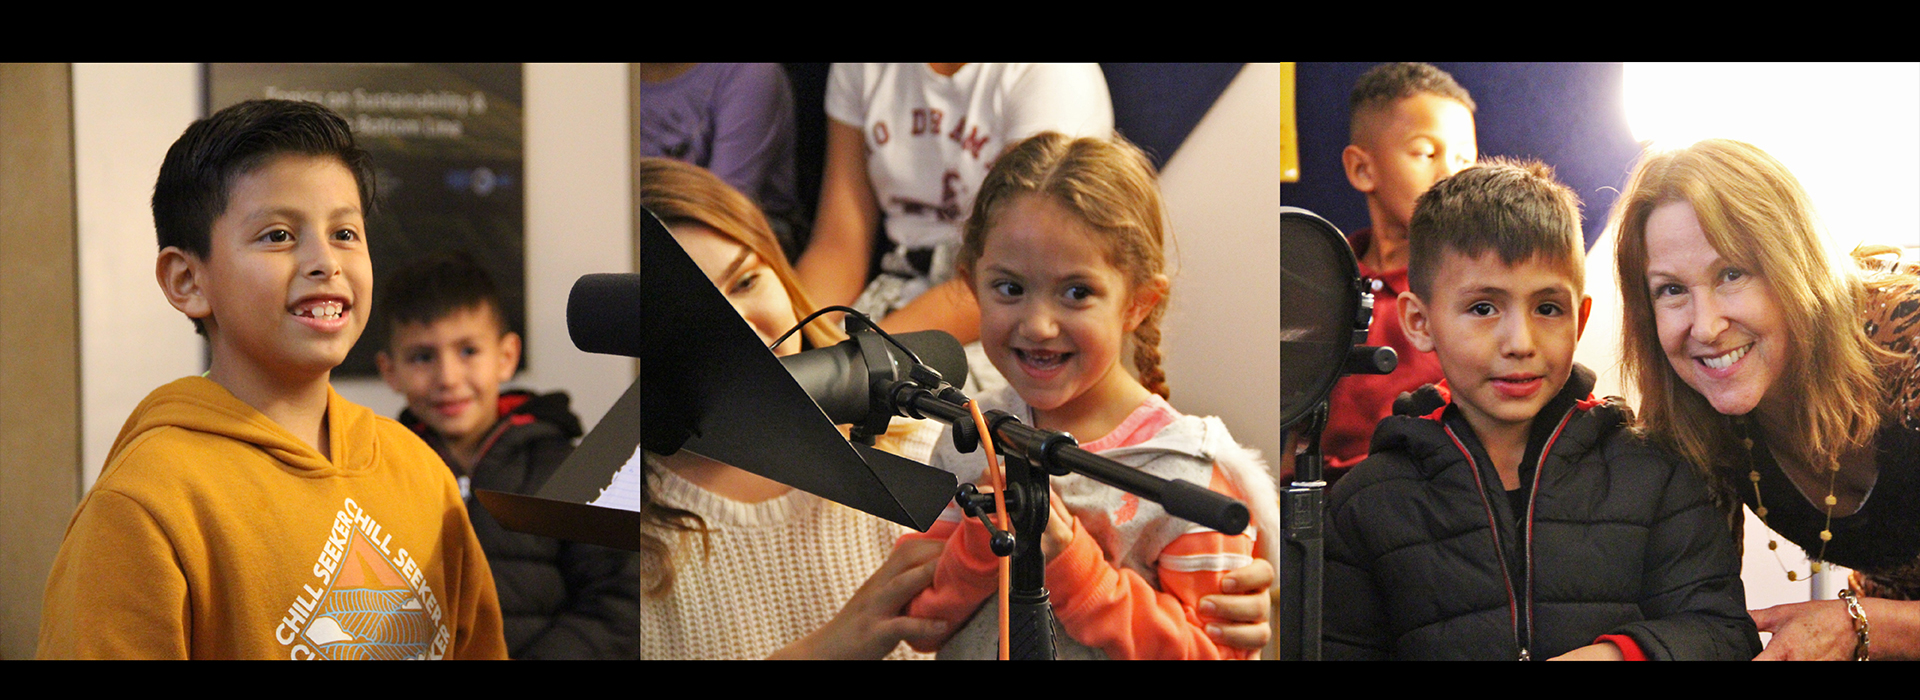 Coyote Radio's SCIPP Kids Holiday Special to air on KVCR-FM